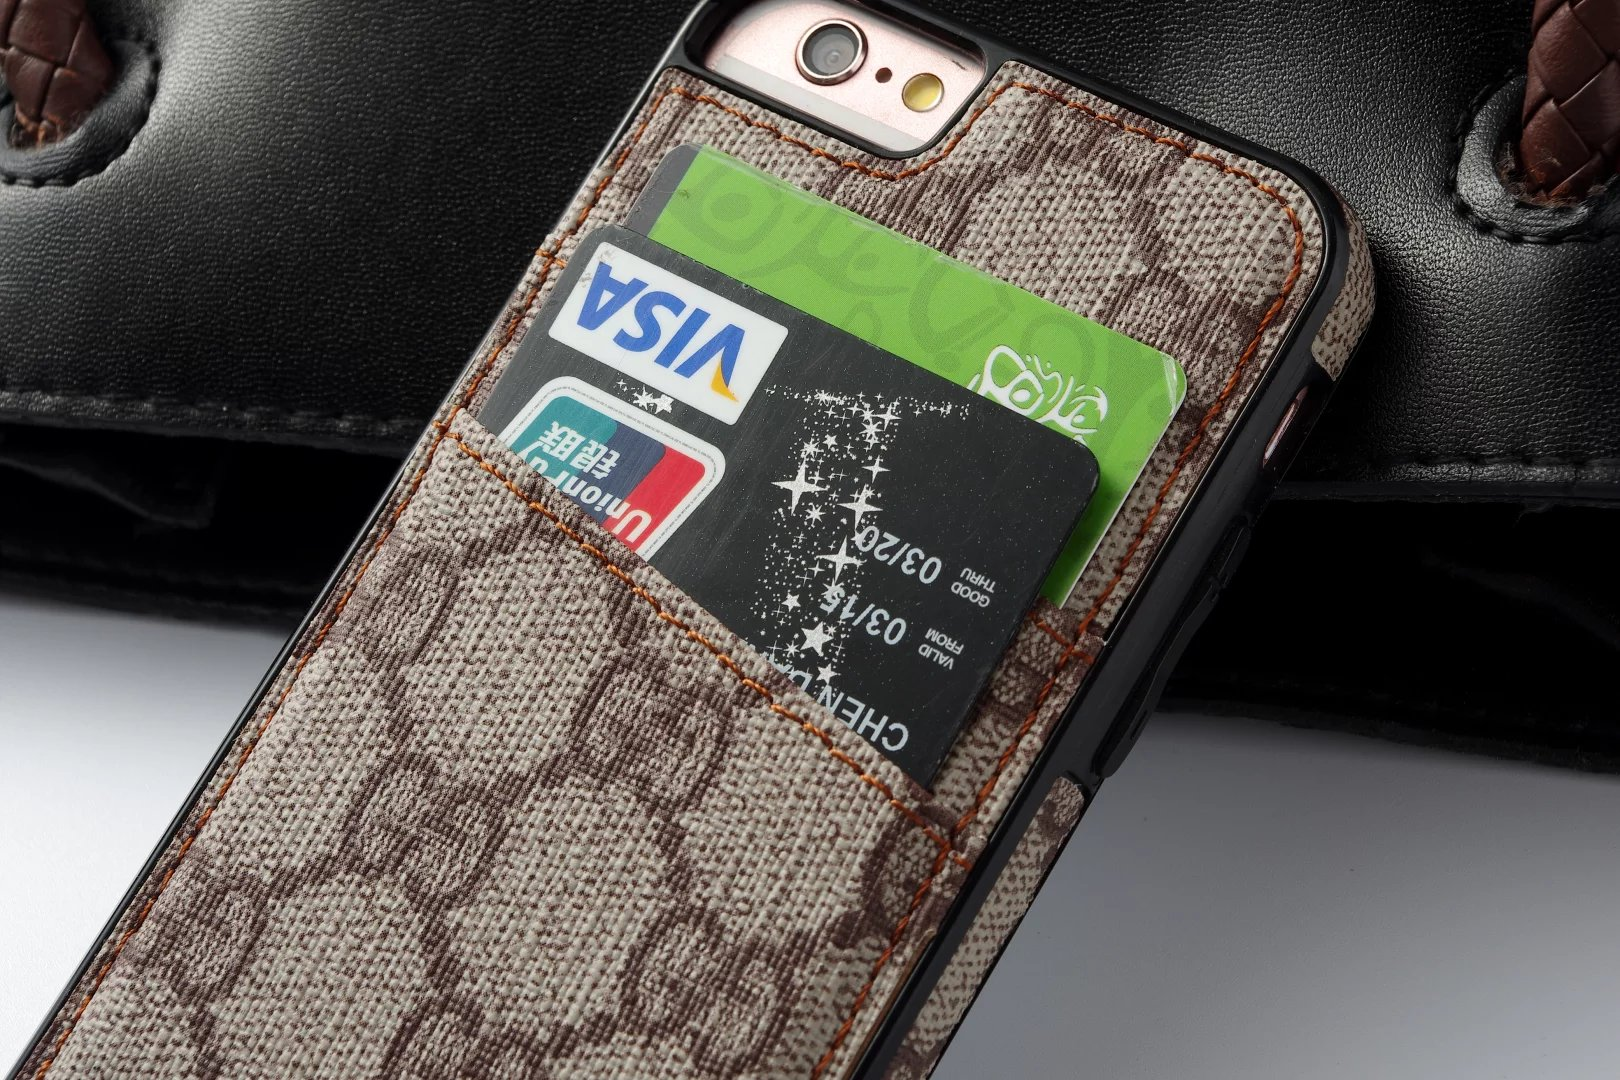 iphone case selbst gestalten lederhülle iphone Louis Vuitton iphone7 Plus hülle iphone 7 Plus hülle design handyhüllen anfertigen las7n iphone display größe smartphone ca7 7lber machen ipone hülle appel iphone 6